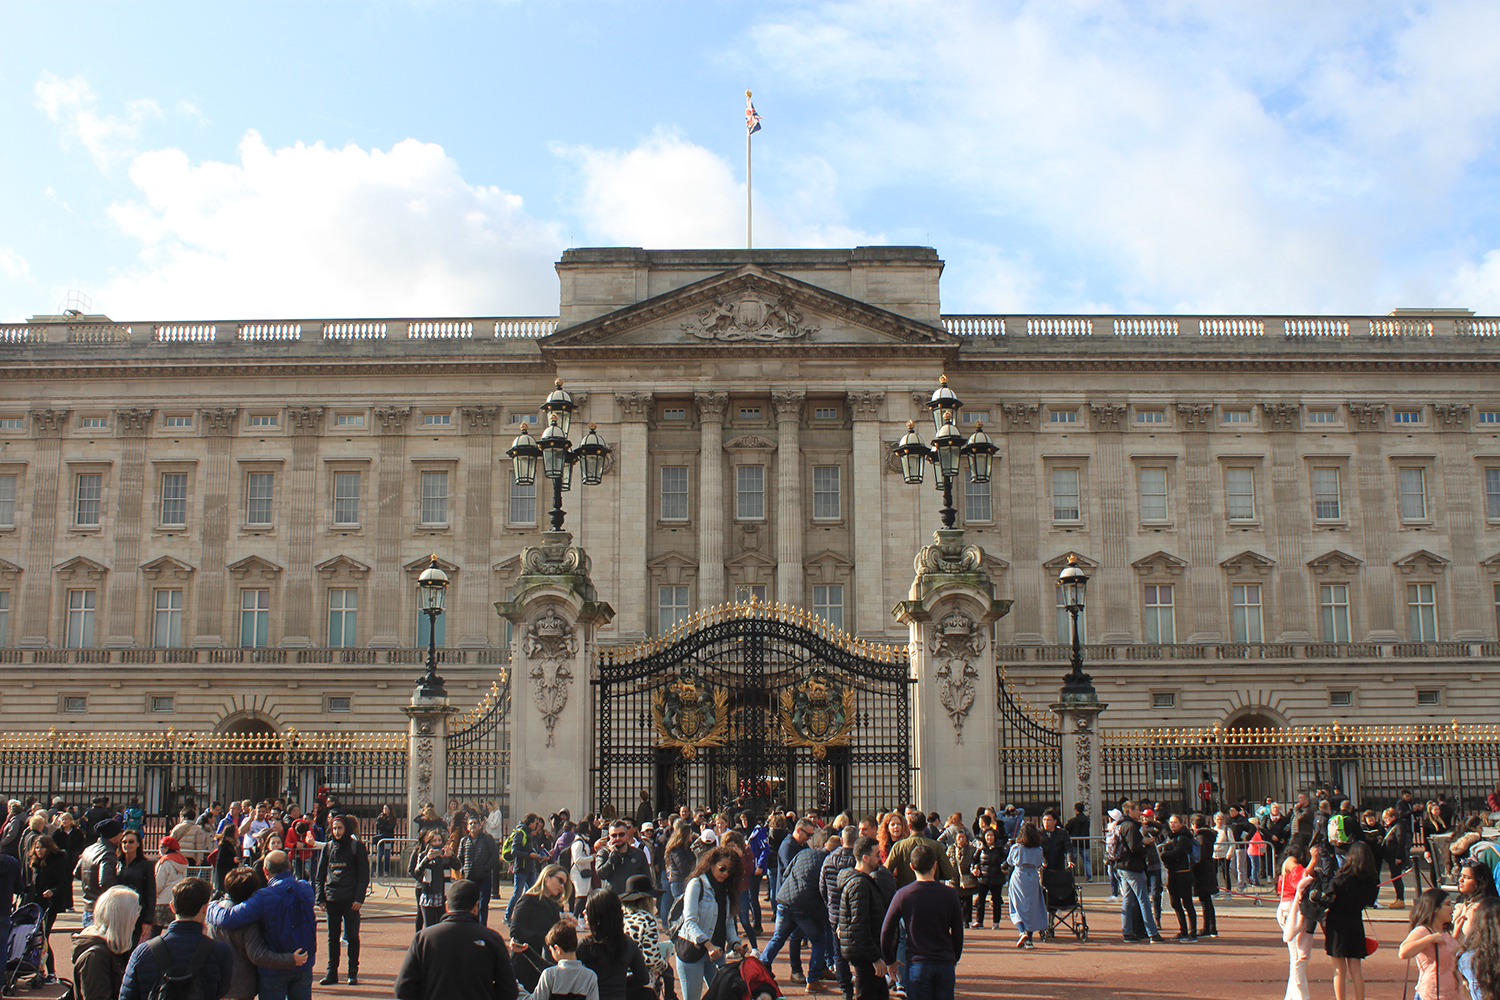 Many people are walking, standing, and taking pictures in front of a palace.